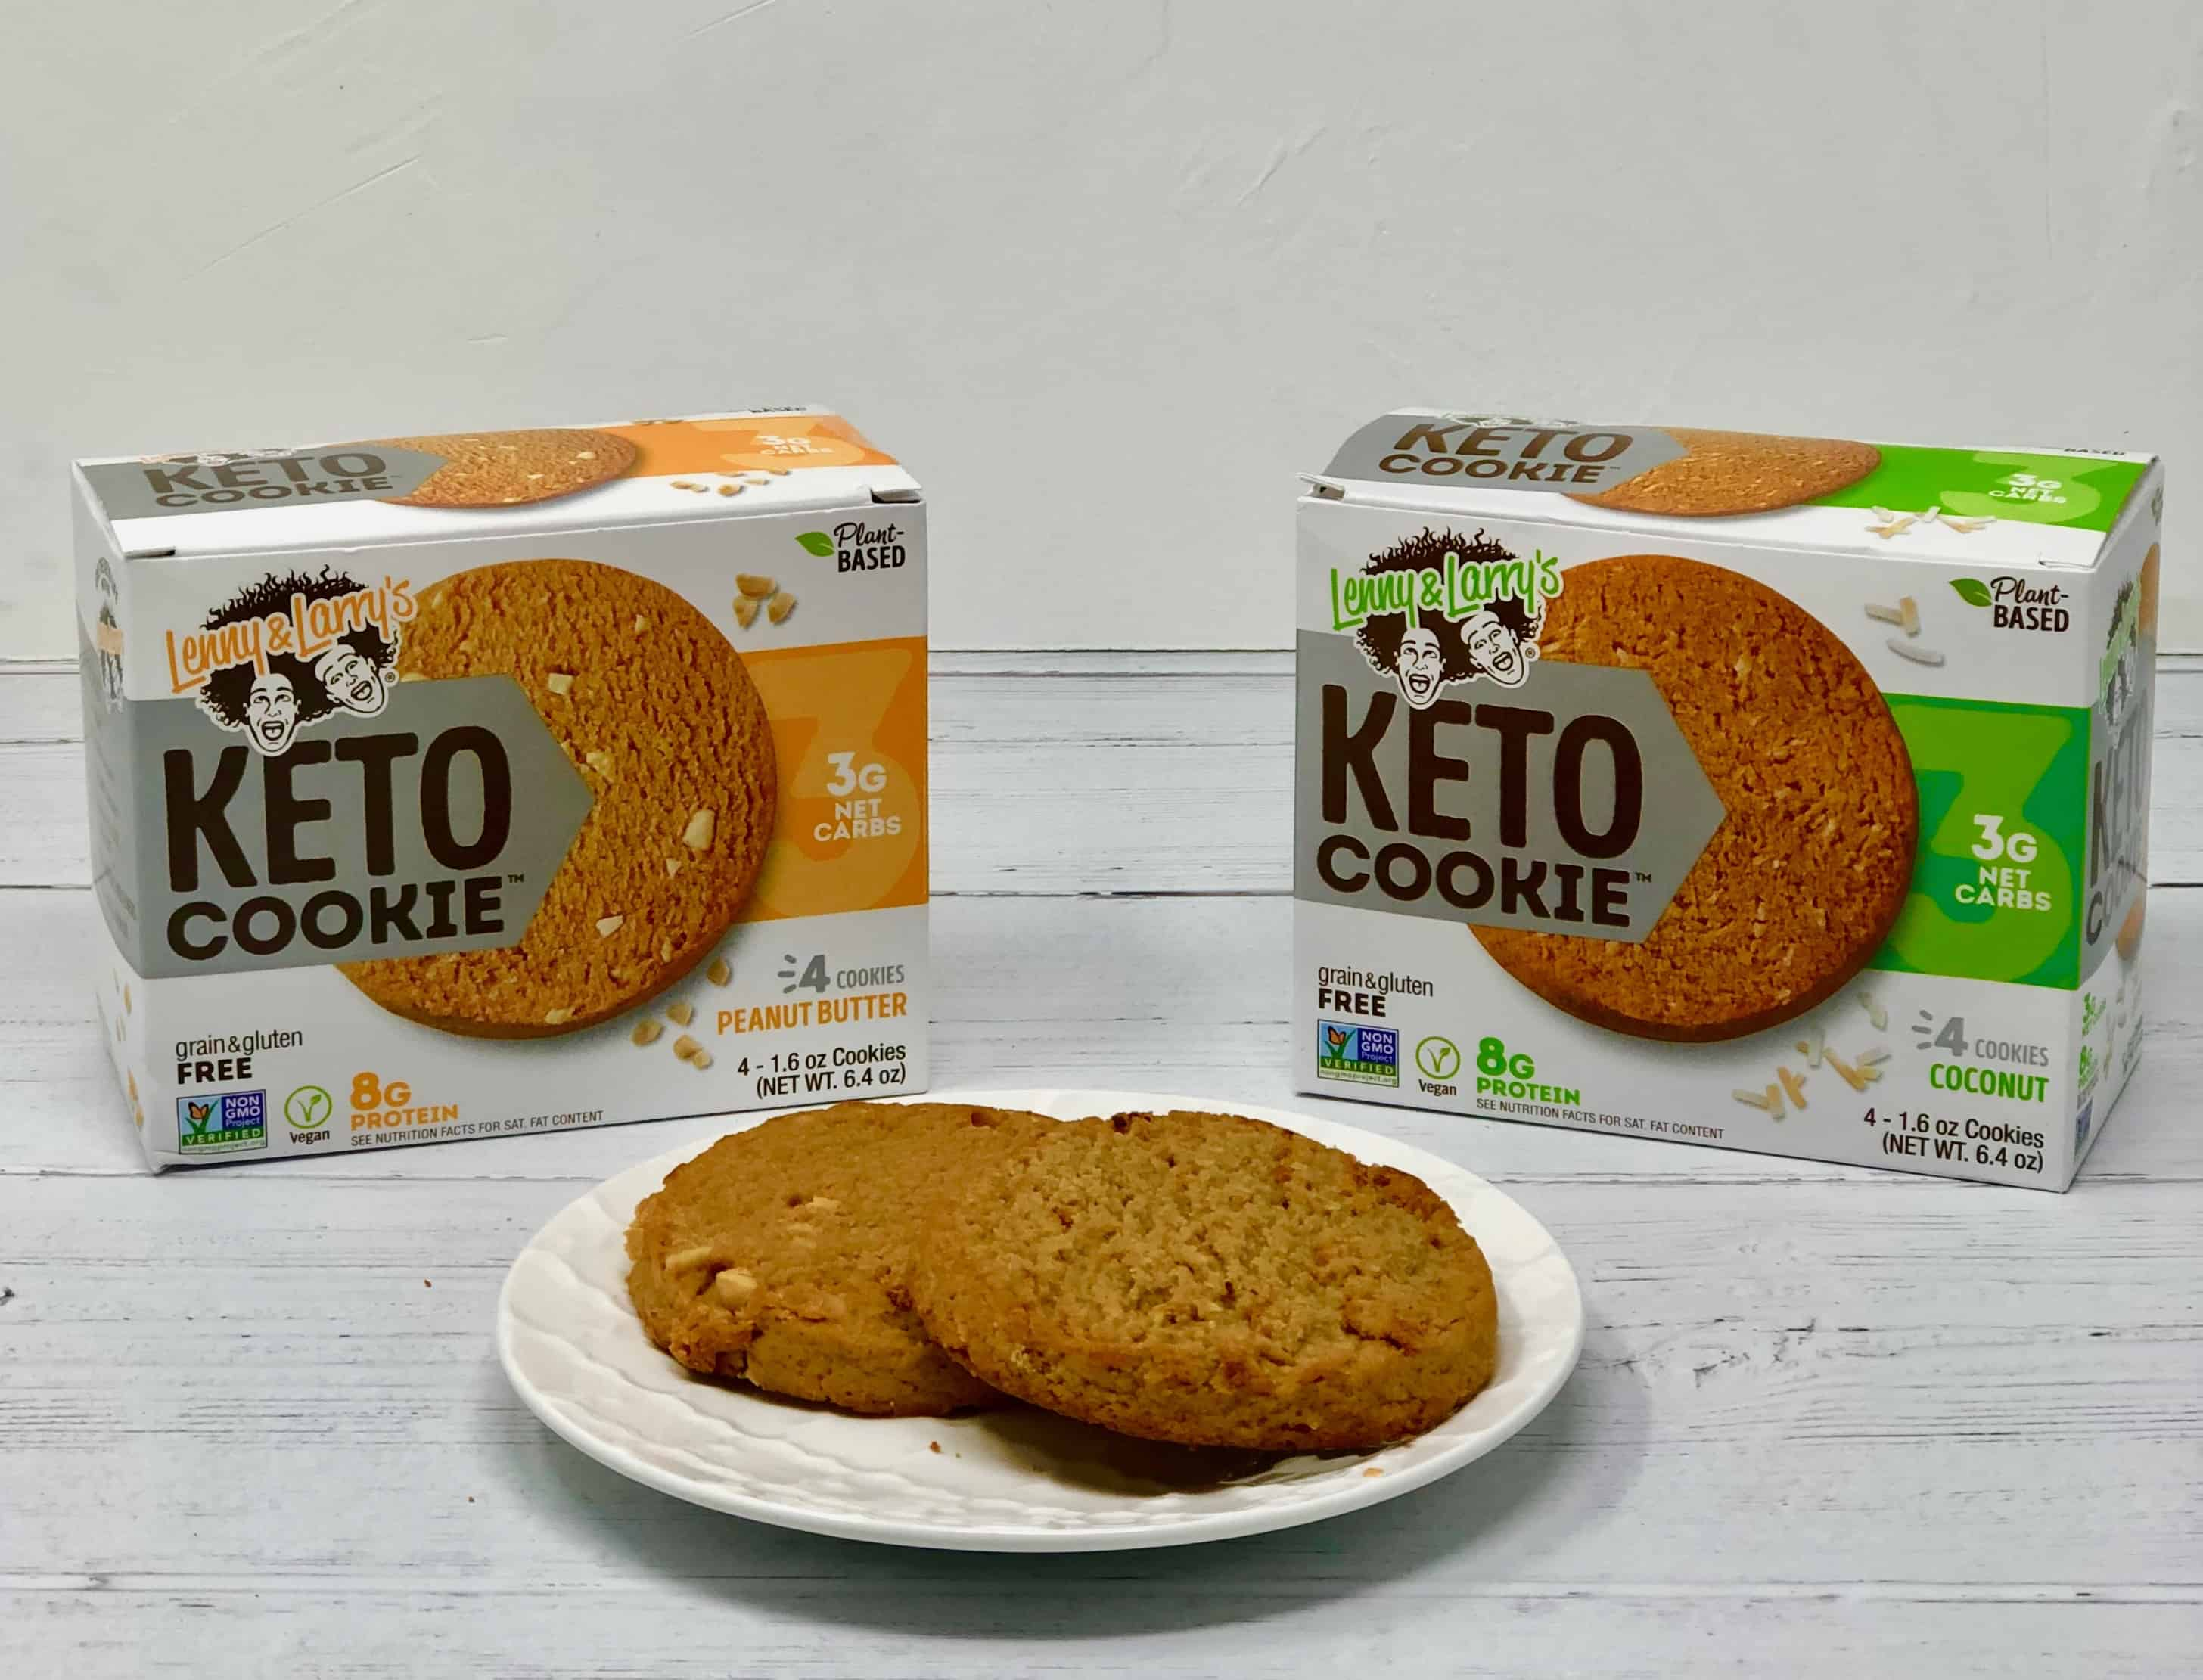 Lenny & Larry's keto cookies on a white background.